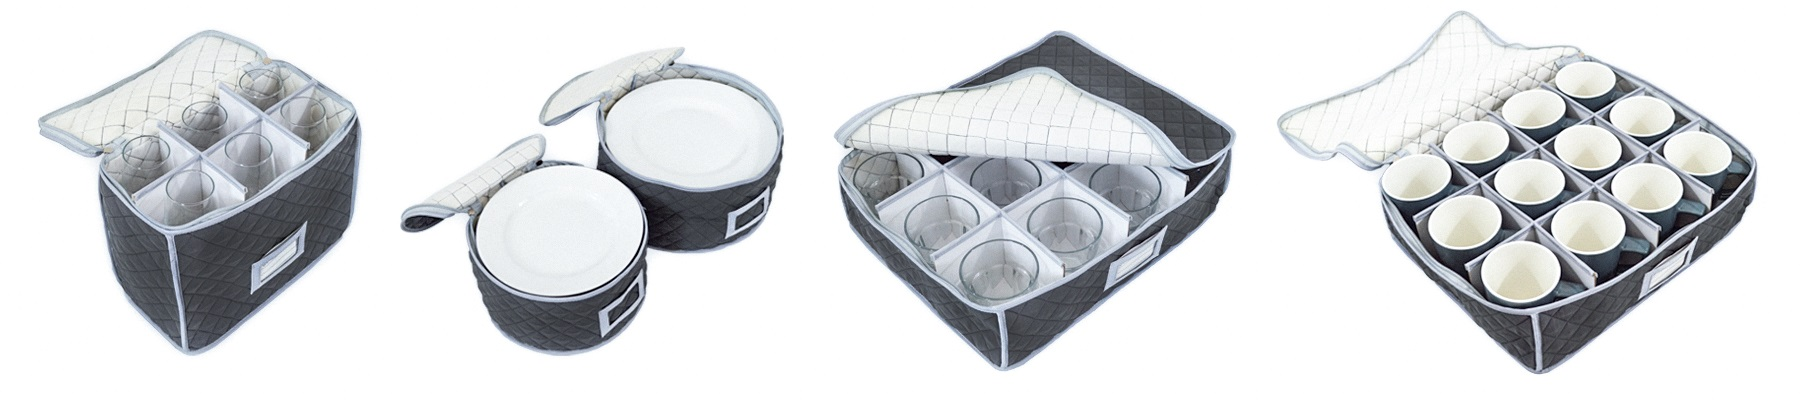 Quilted Storage Cases, Glassware Storage, Plate Storage